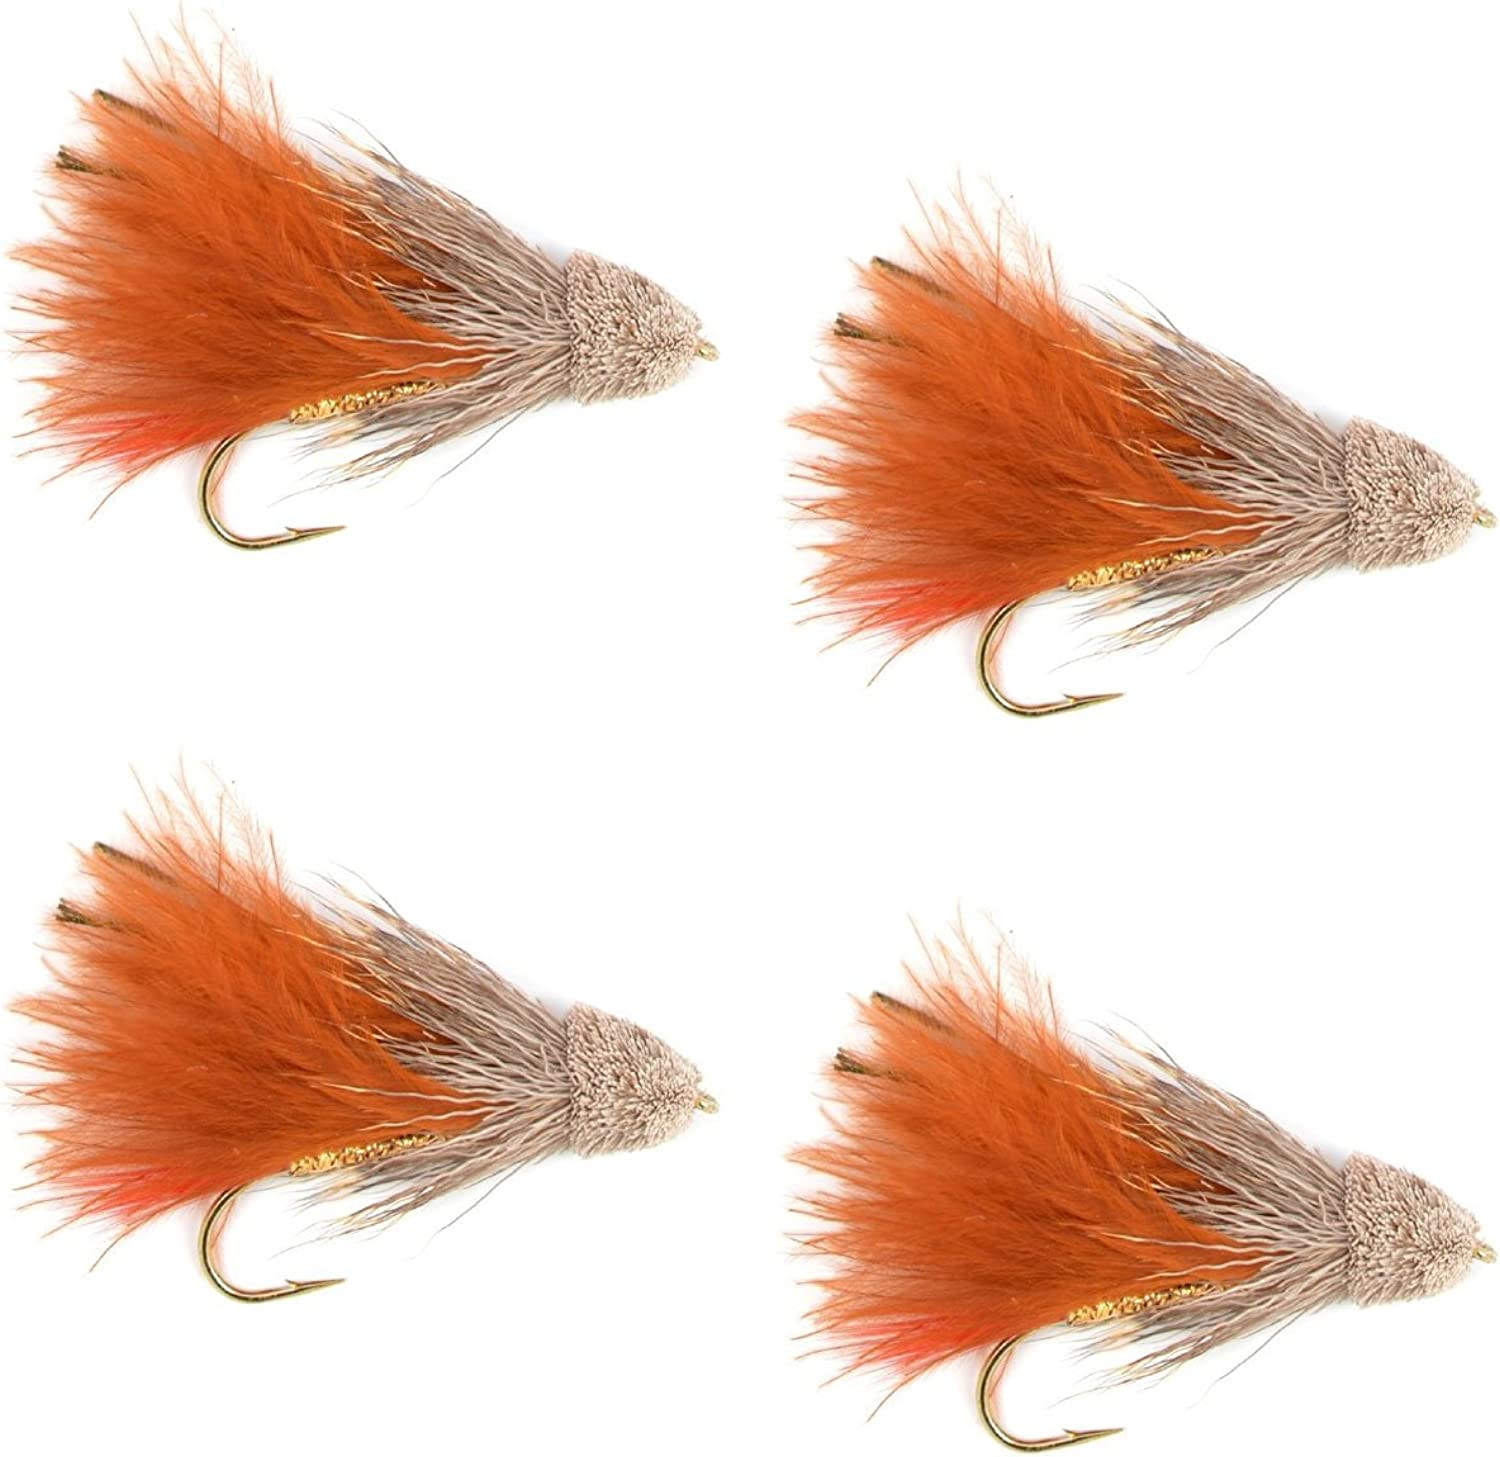 The Fly Fishing Place Streamers  Brown Marabou Muddler Minnow Streamer Flies  4 Fly Fishing Flies  Hook Size 4